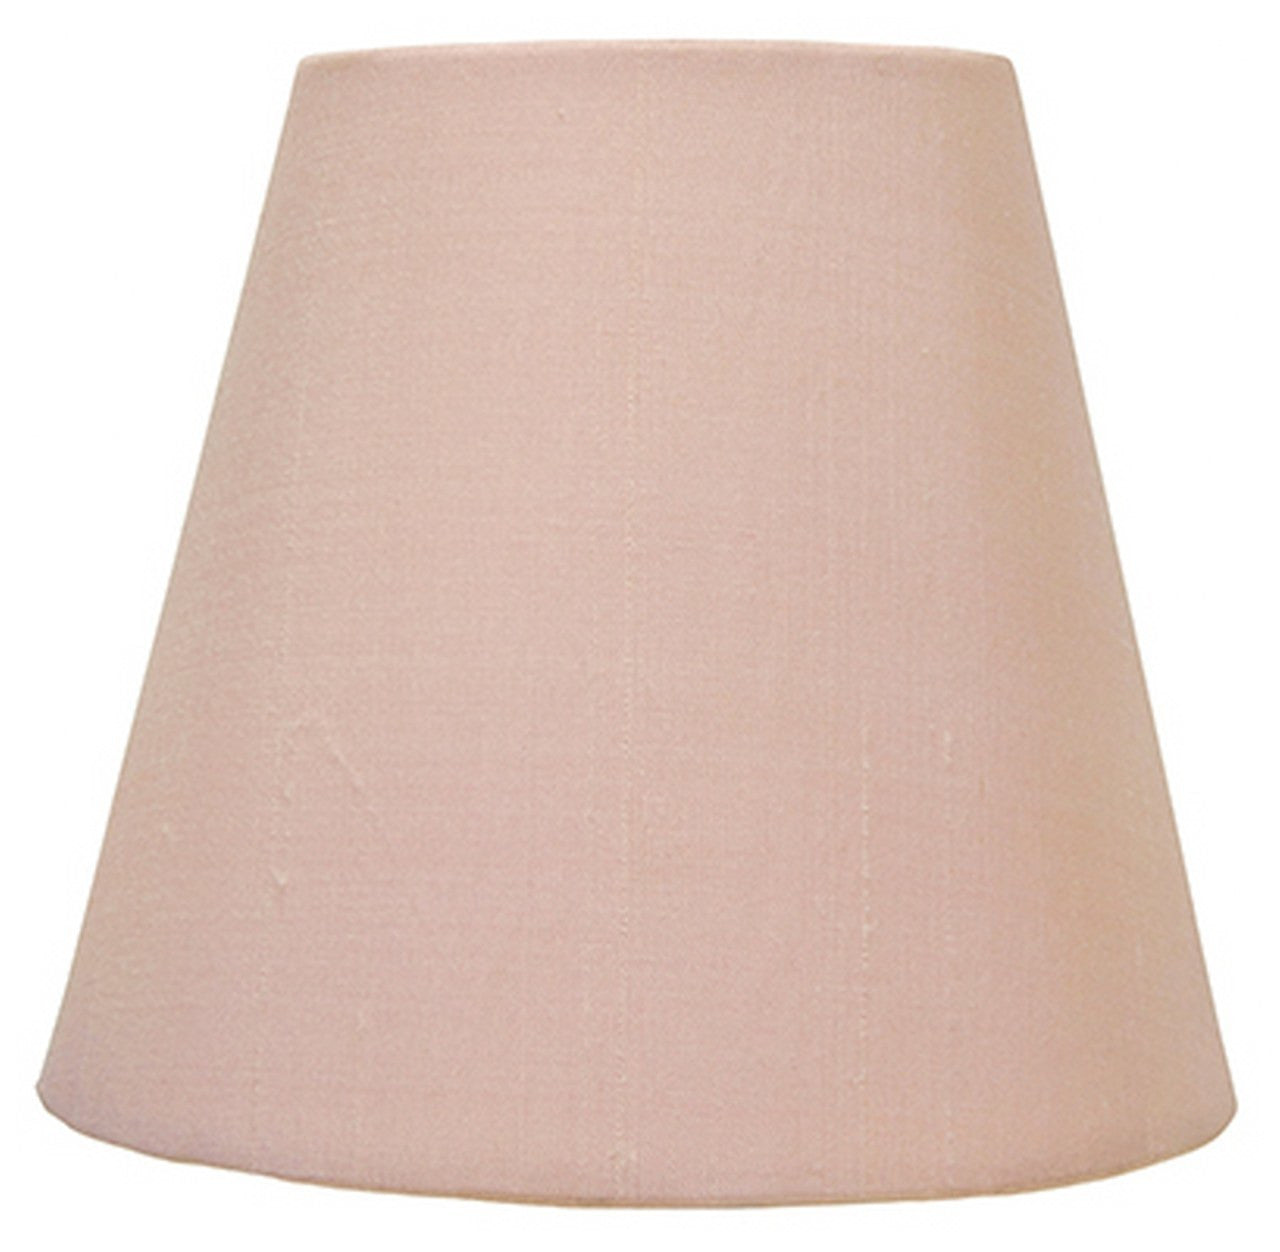 6 inch mini chandelier shade pink silk lamp shade clip onuib21 upgradelights 6 inch mini chandelier shade pink silk lamp shade clip onuib21 arubaitofo Choice Image